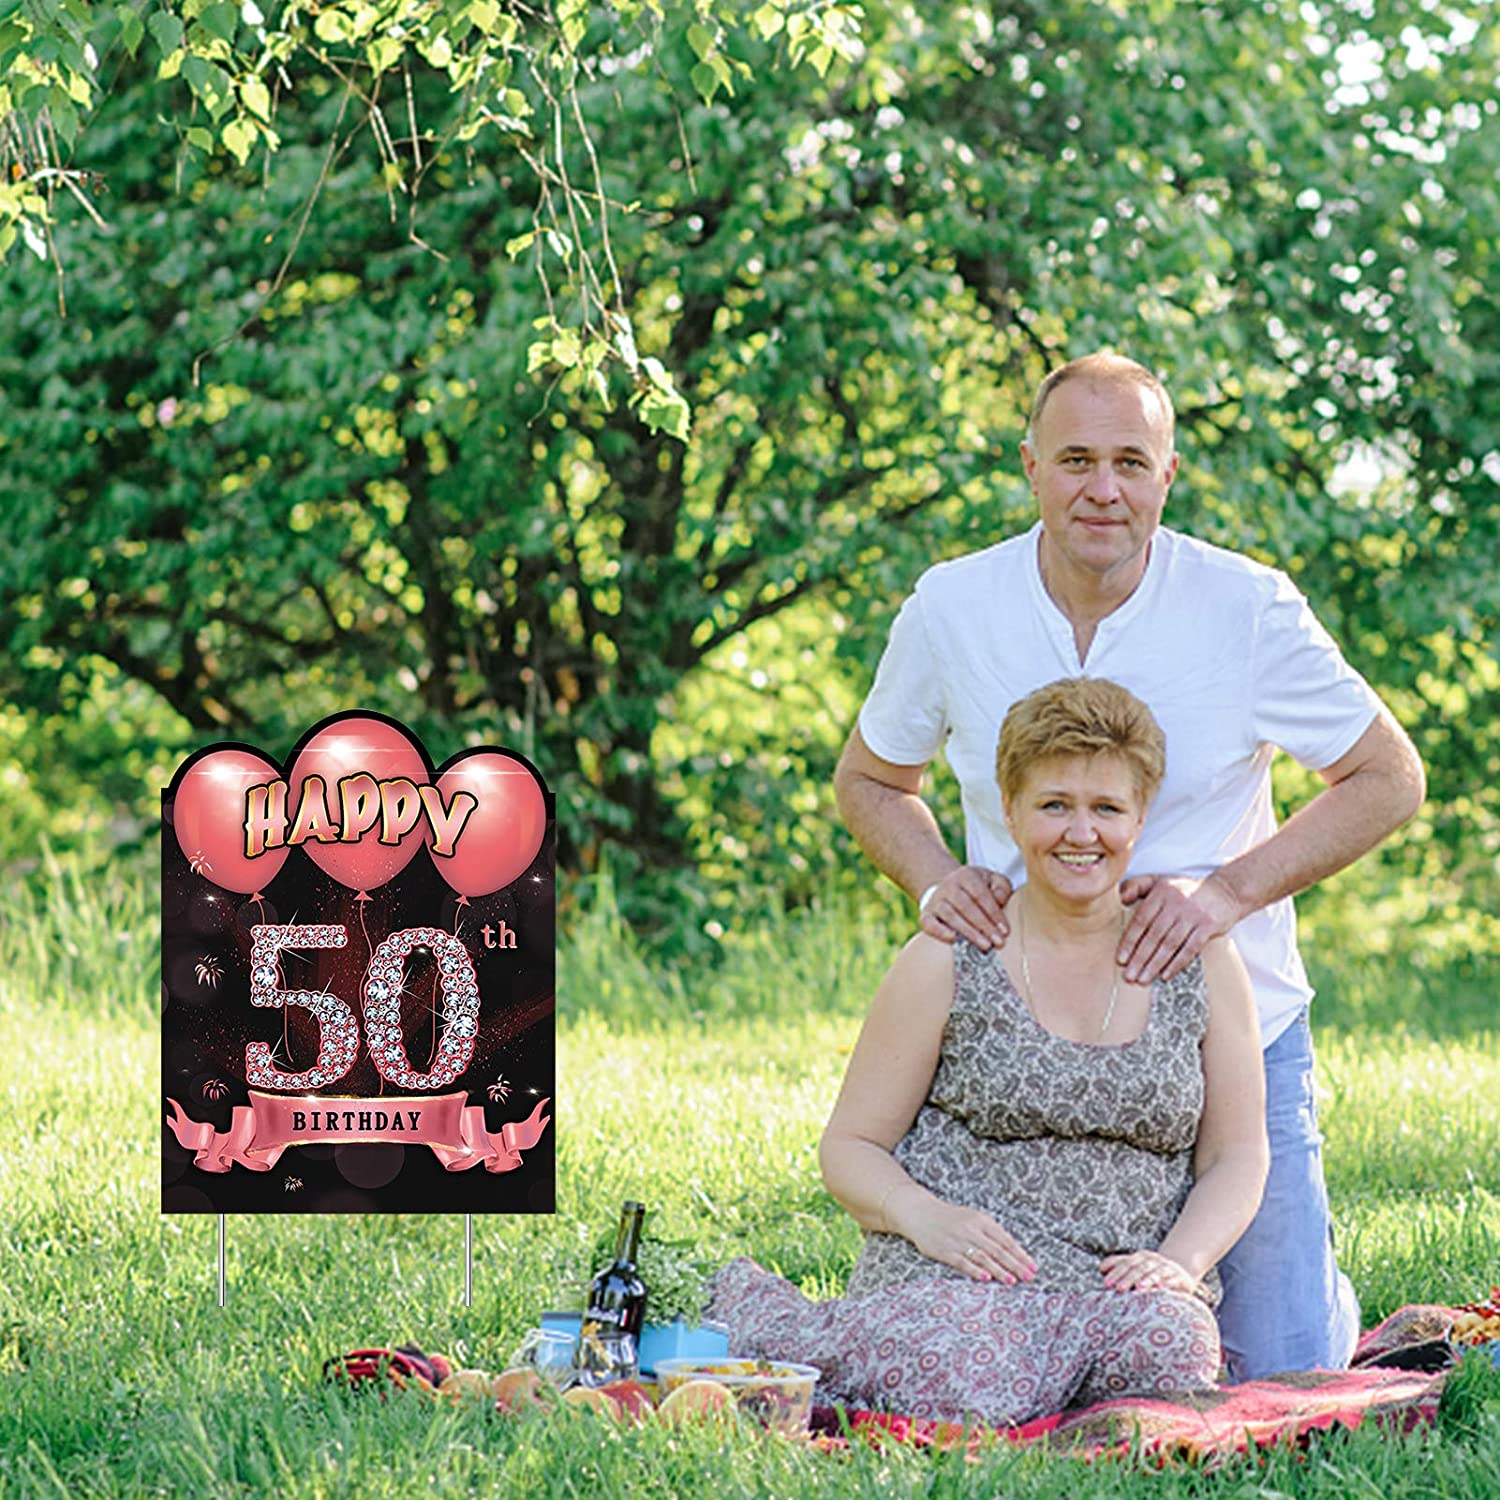 Rose Gold 50 Year Old Birthday Lawn Sign Party Supplies for Women Excelloon 50th Birthday Yard Sign Decorations Happy Fifty Birthday Party Outdoor Yard Signs with Stakes